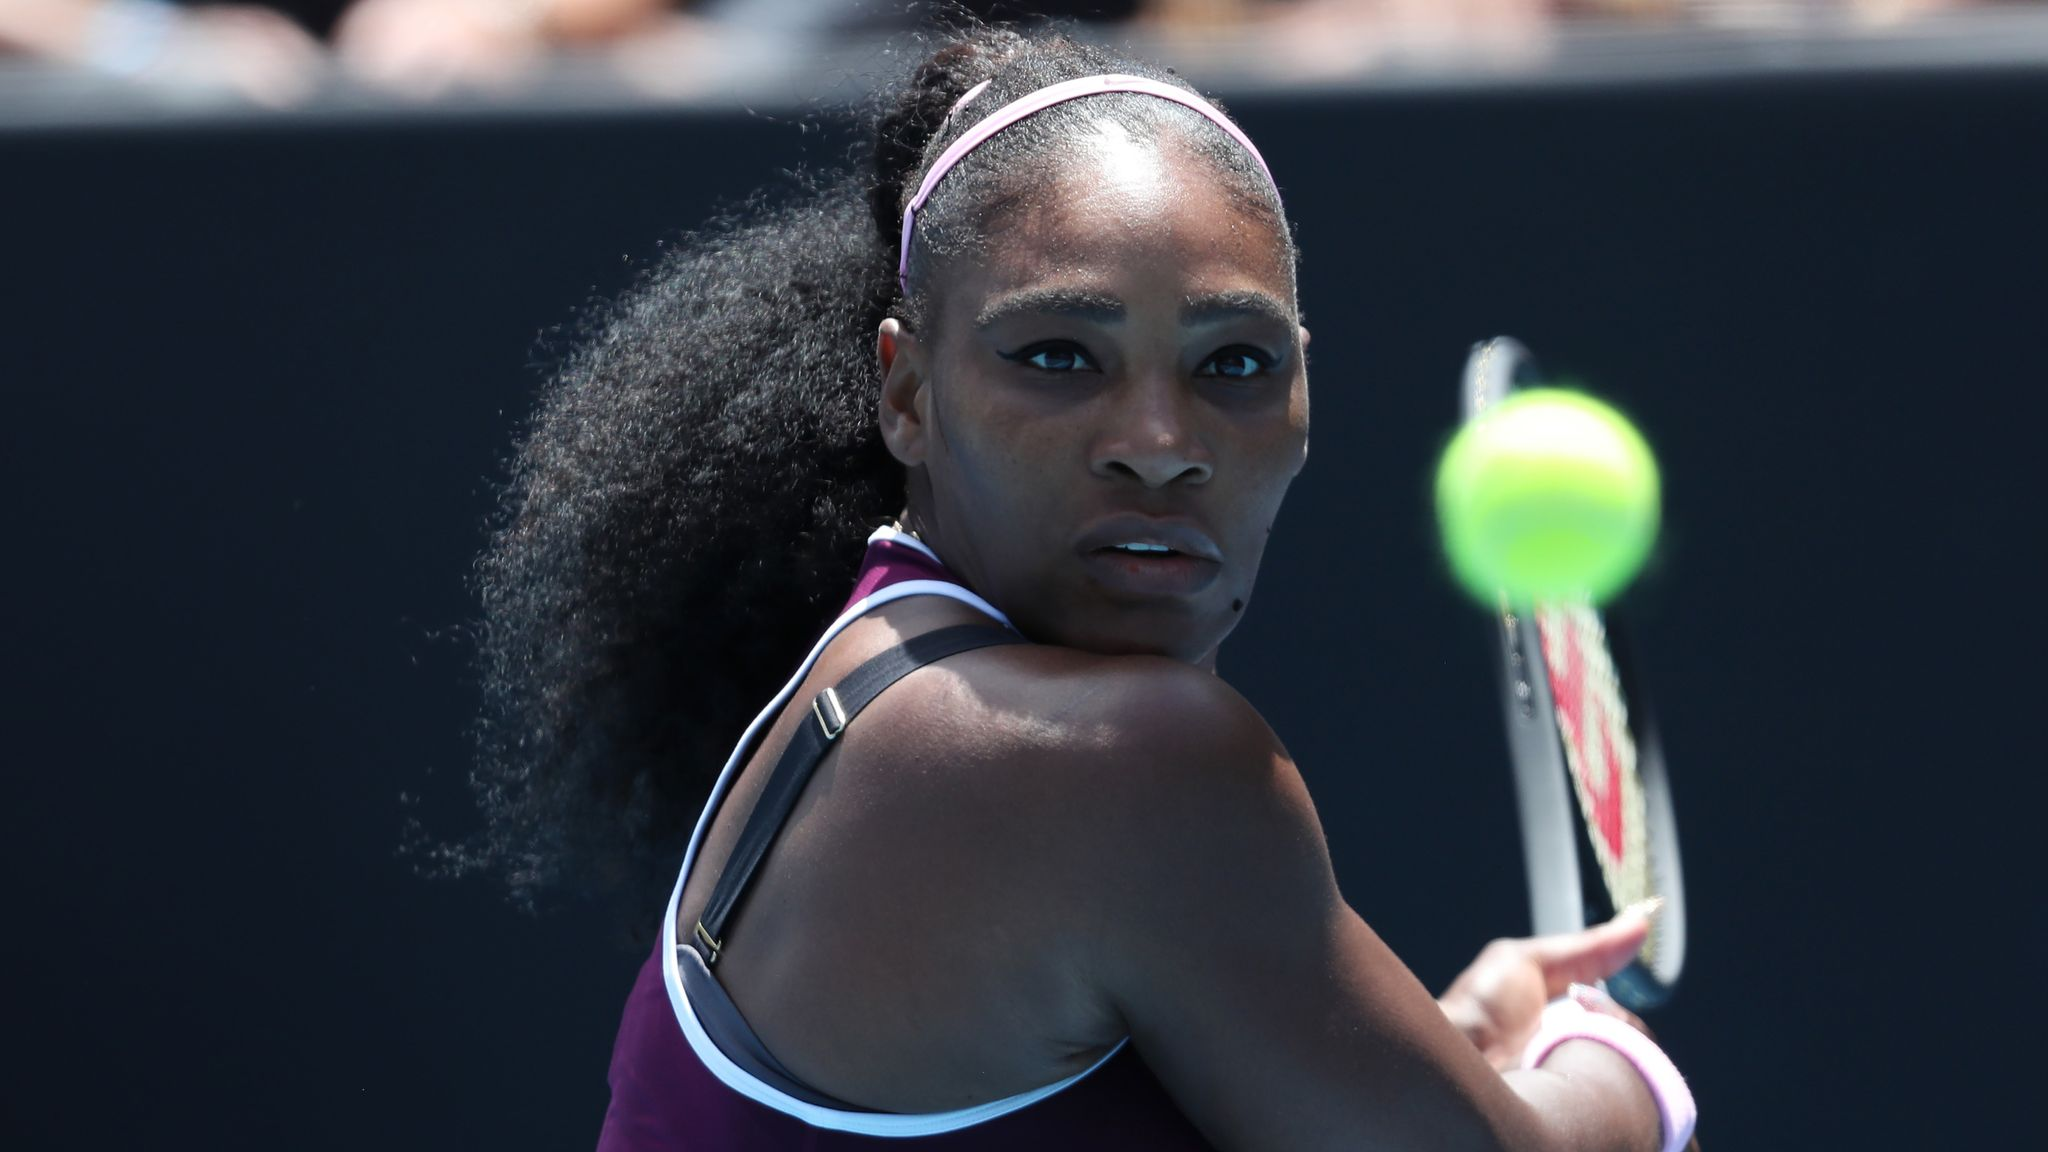 Will Serena Williams' wait for a 24th Grand Slam title finally be over in Melbourne?